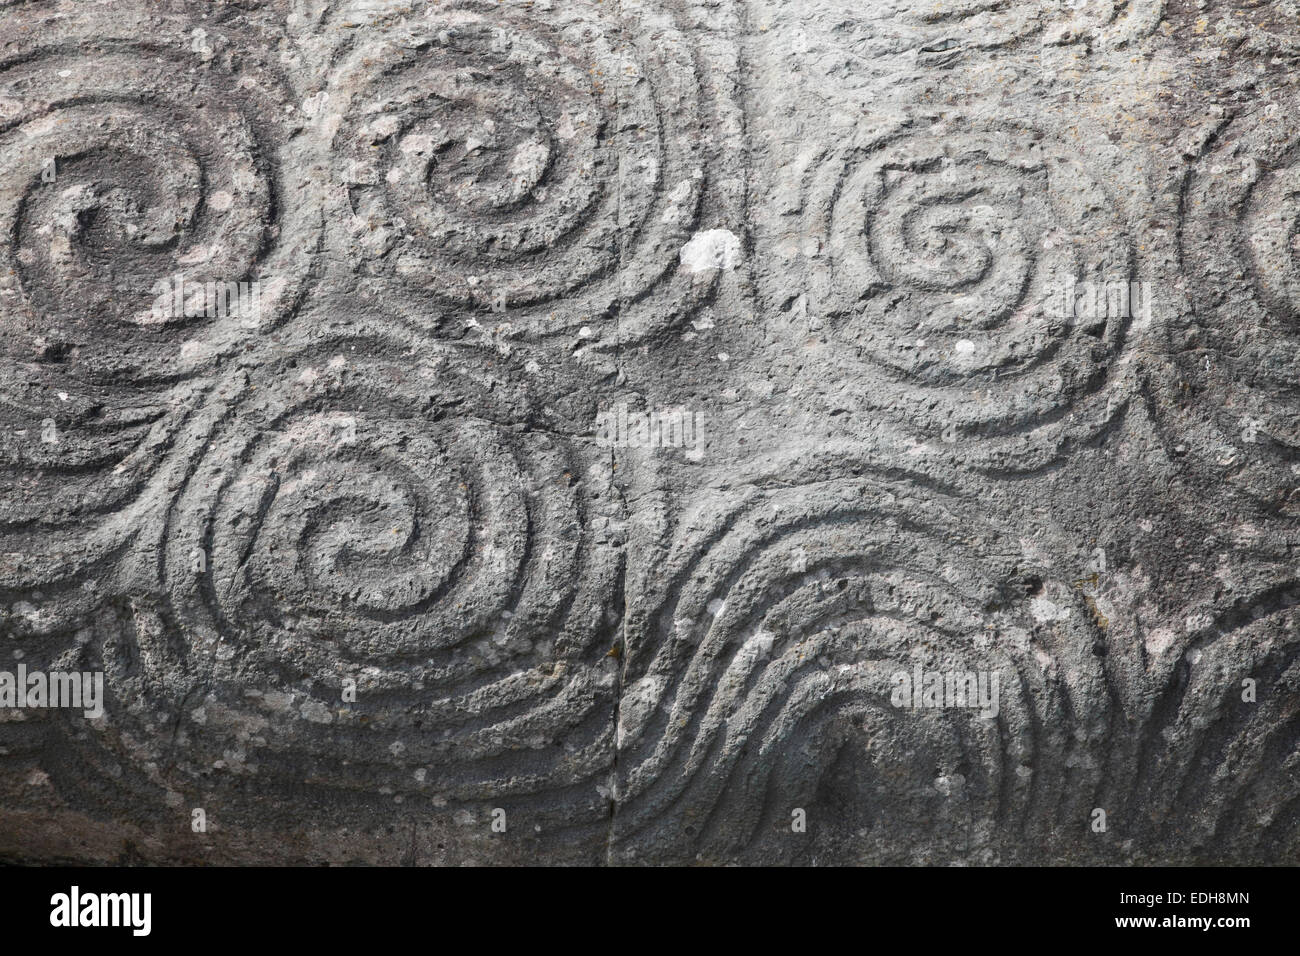 The Triple Spiral (Celtic symbol) engraved on a stone at the entrance of Newgrange, Bru na Boinne, County Meath, Stock Photo